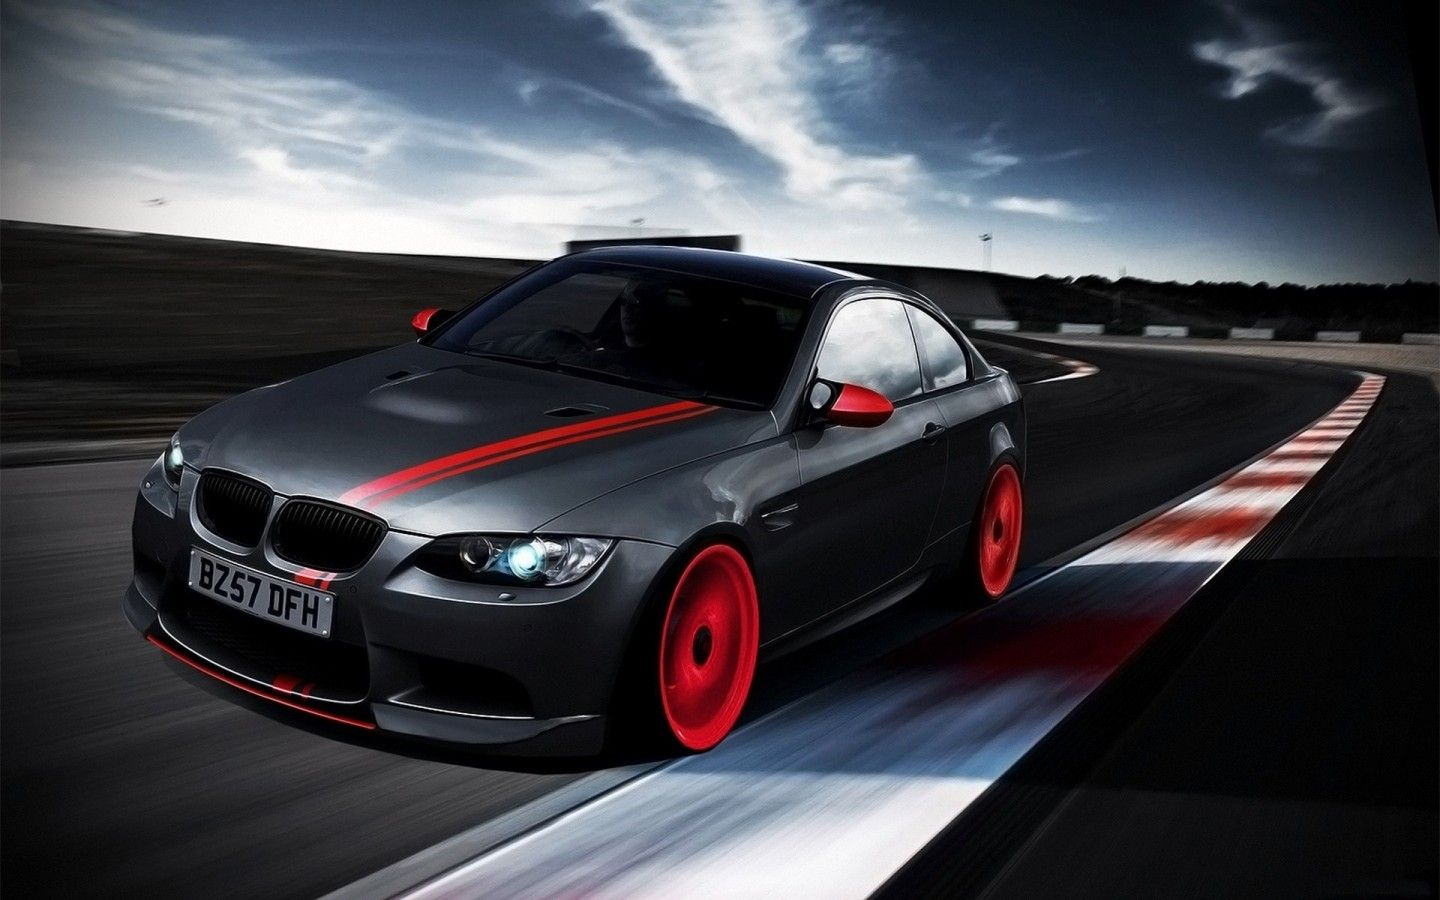 Bmw Car Background Hd Image Full Desktop Wallpaper